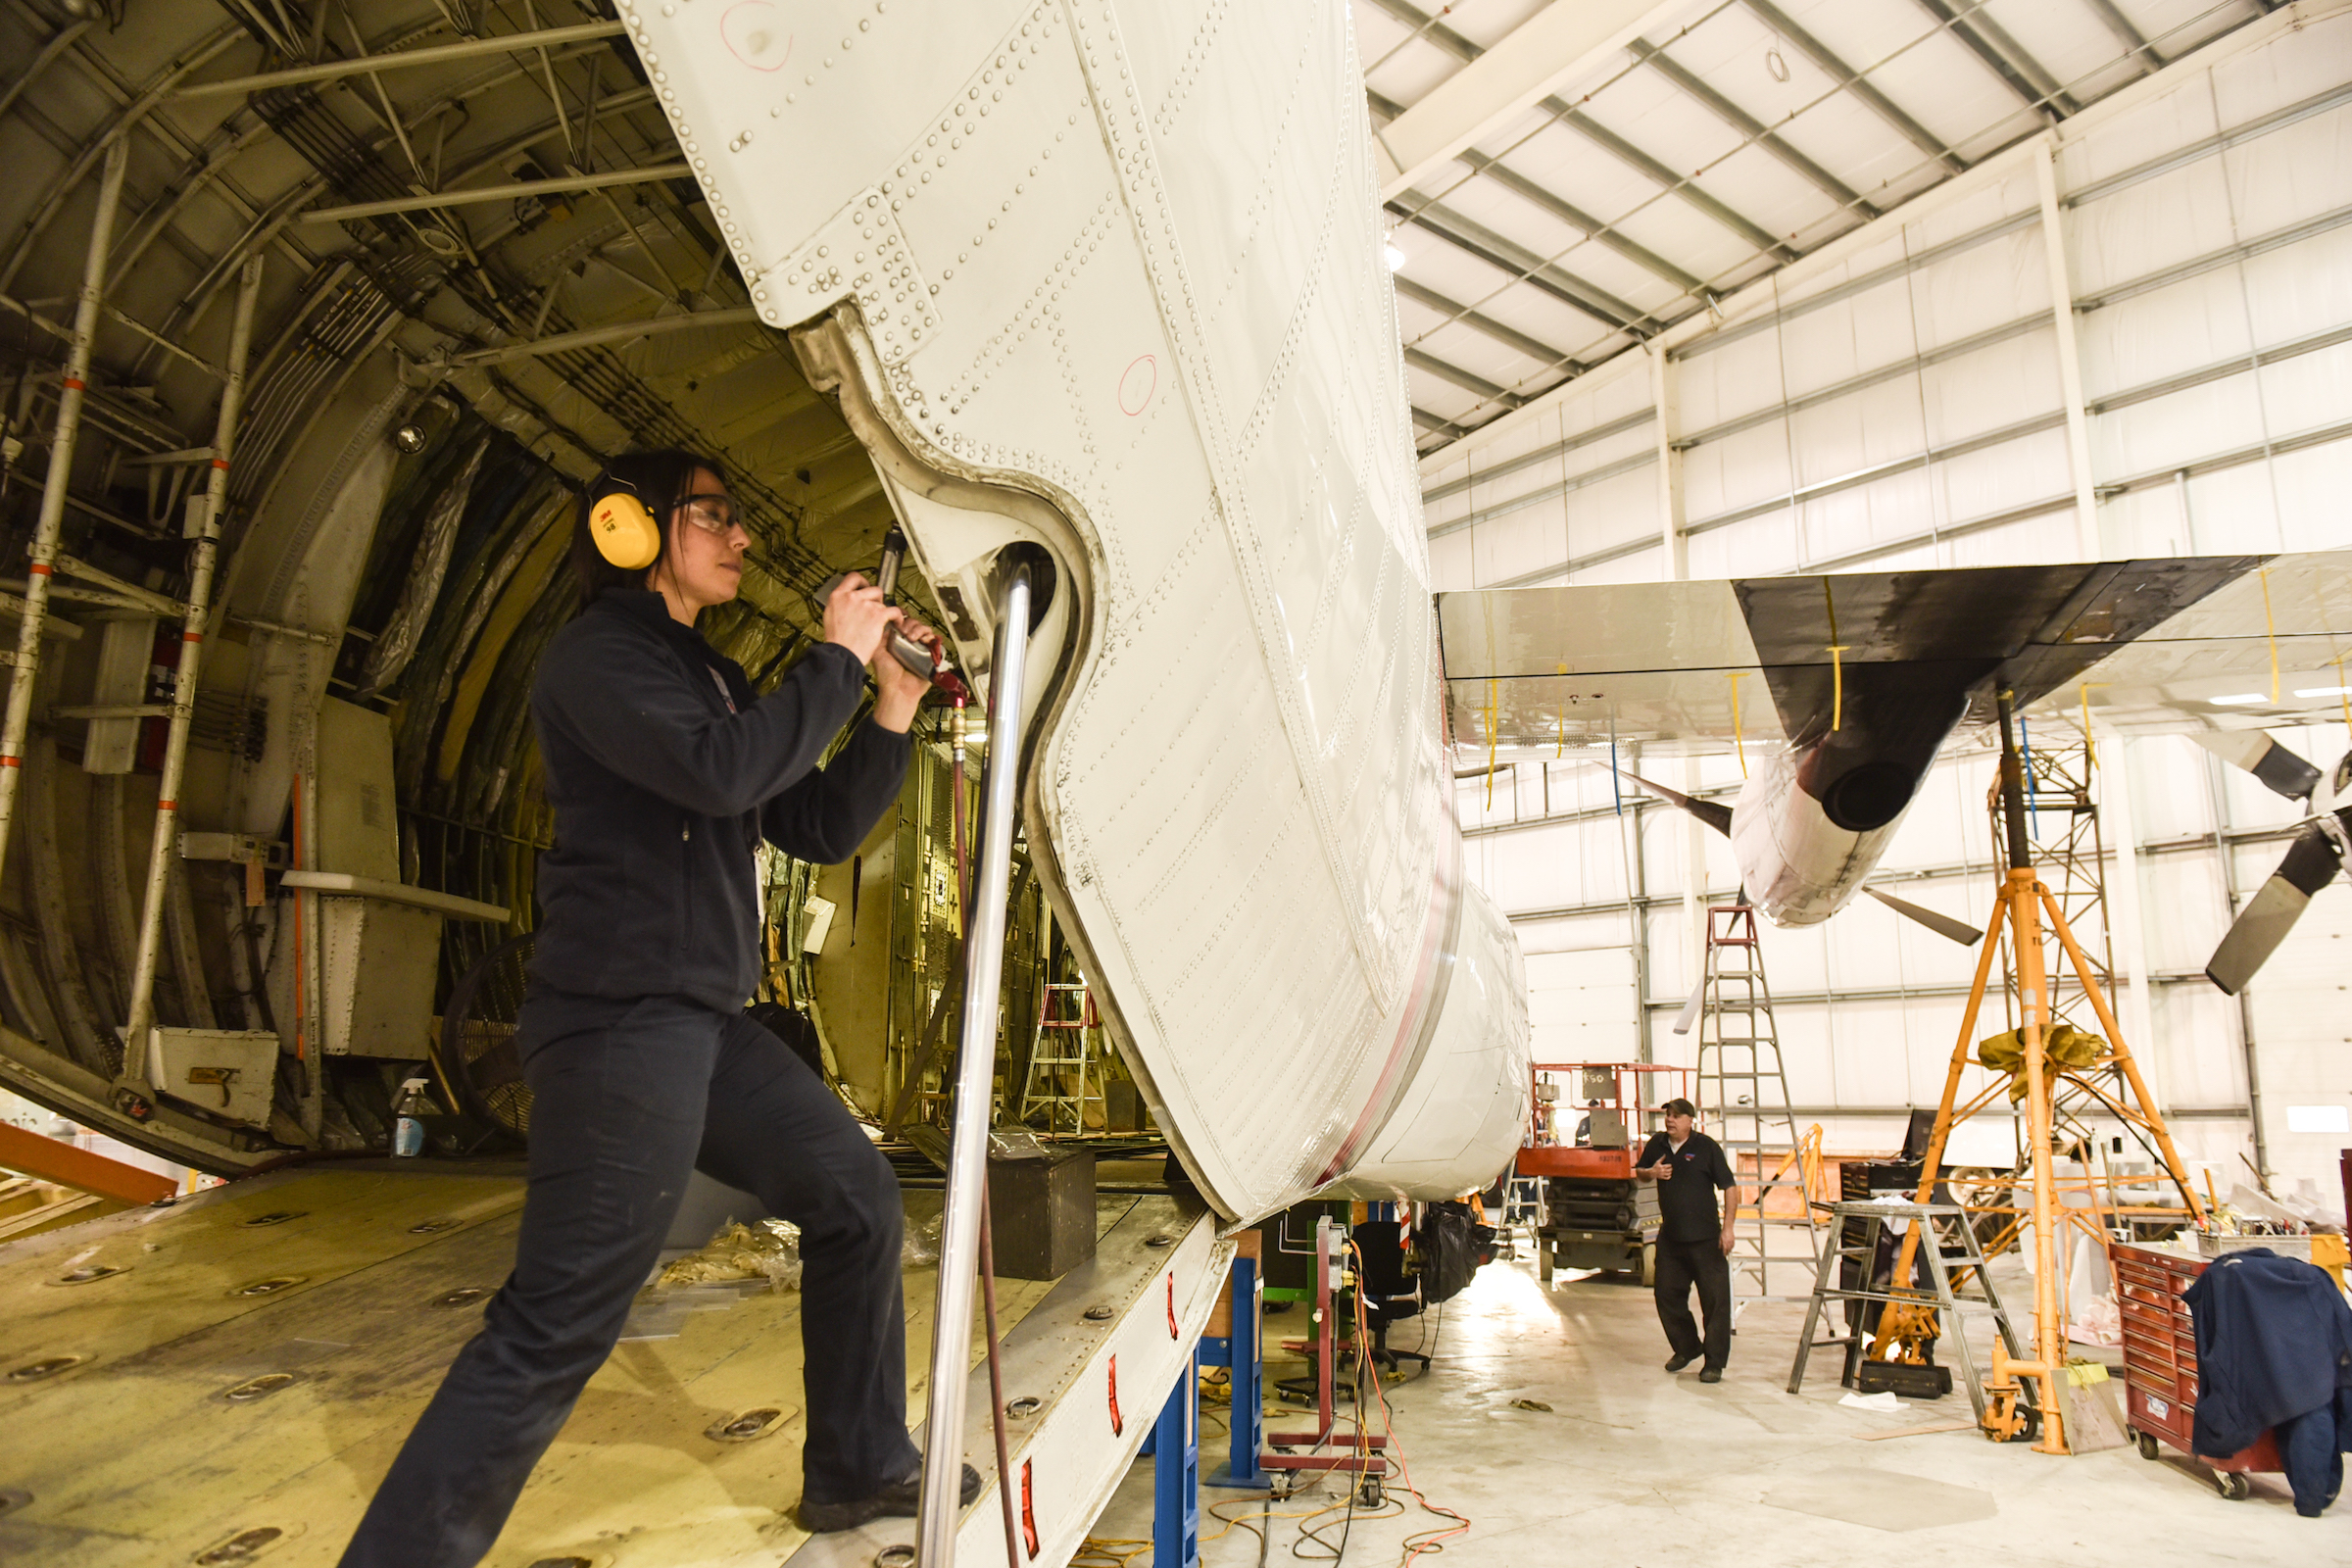 Woman working on the interior of an airplane in a hangar